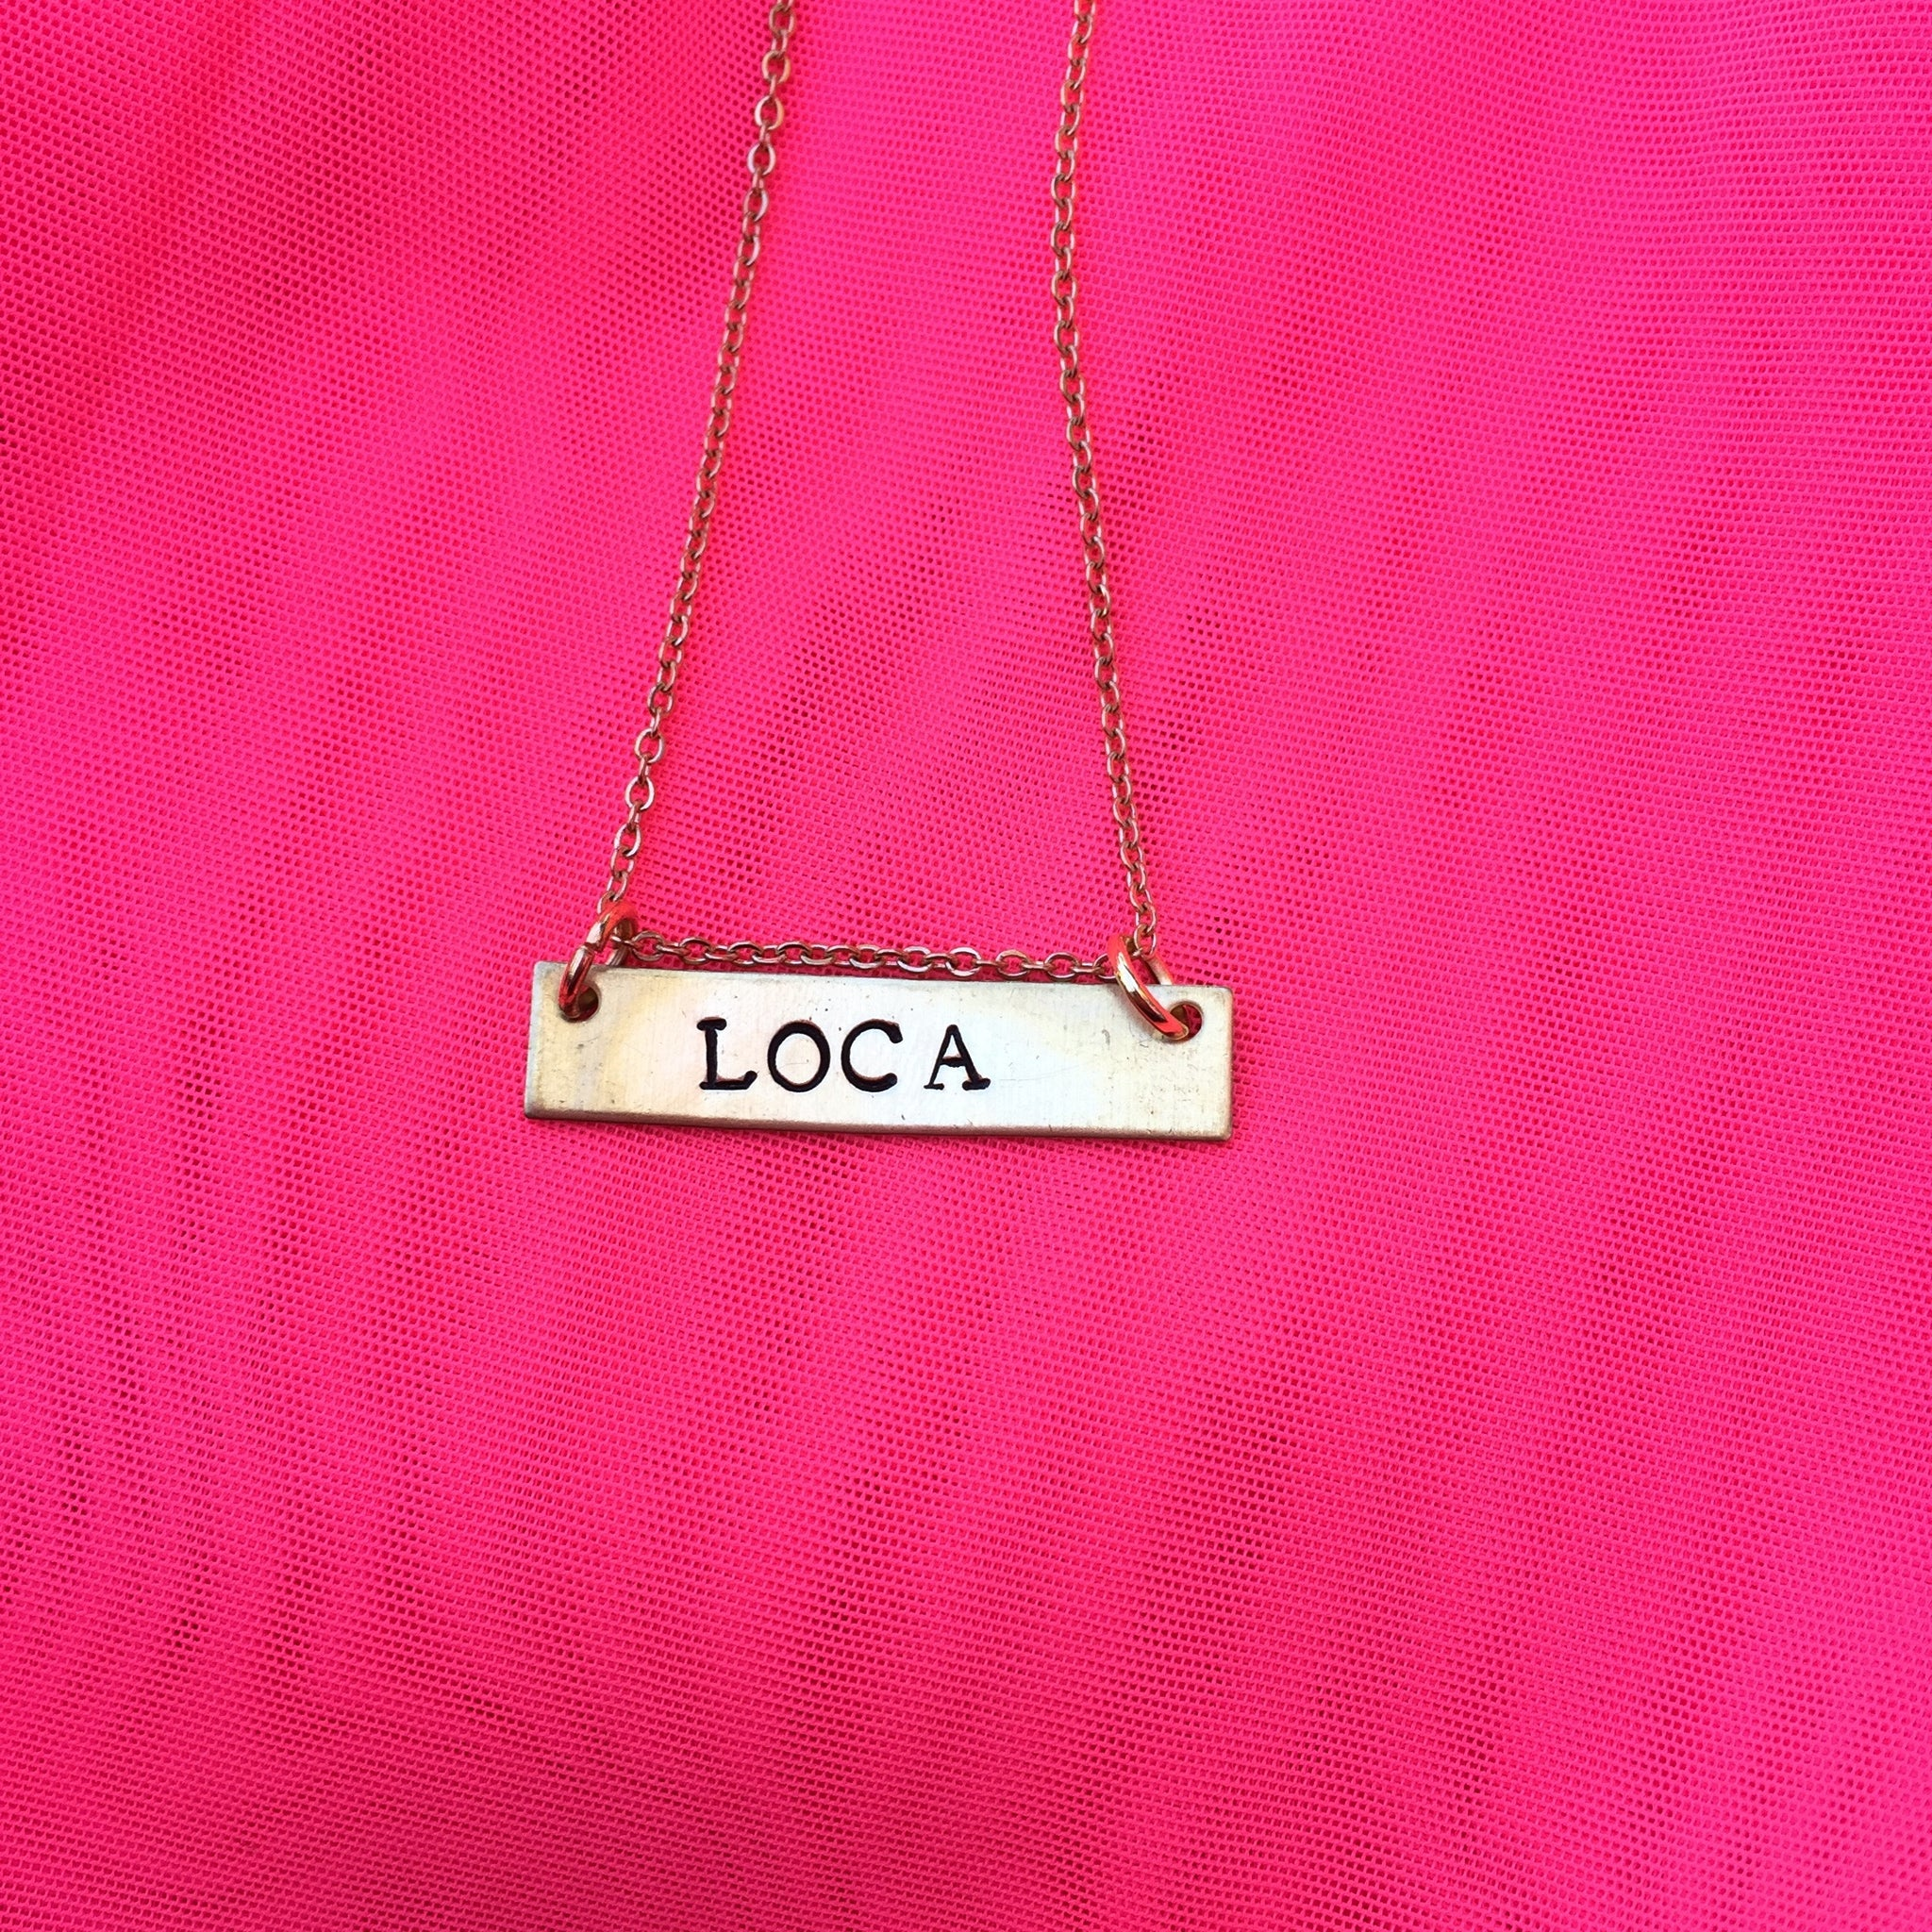 Loca - Stamped Necklace